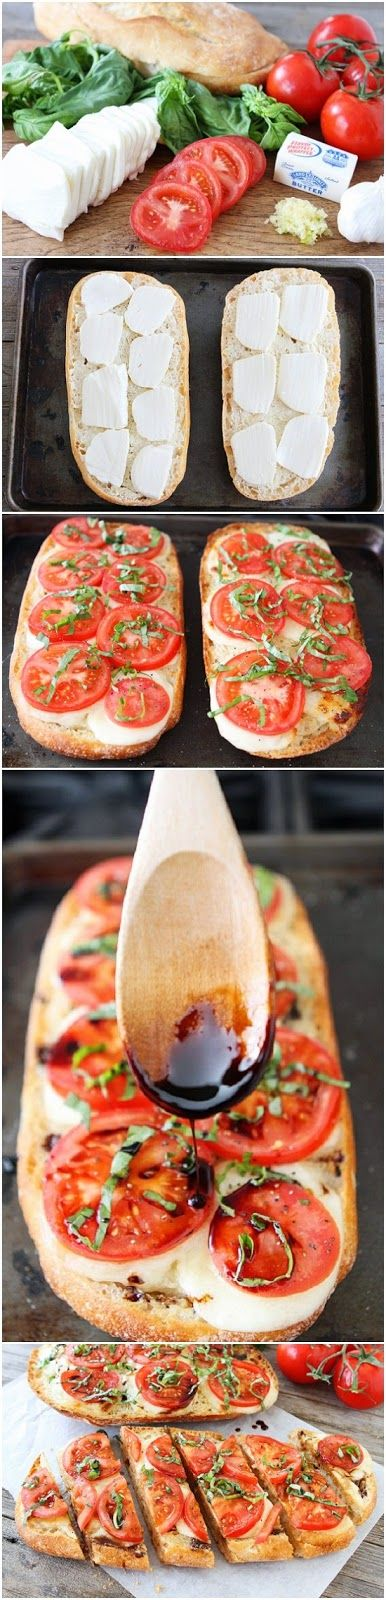 How To Make Caprese Garlic Bread | Food is my friend